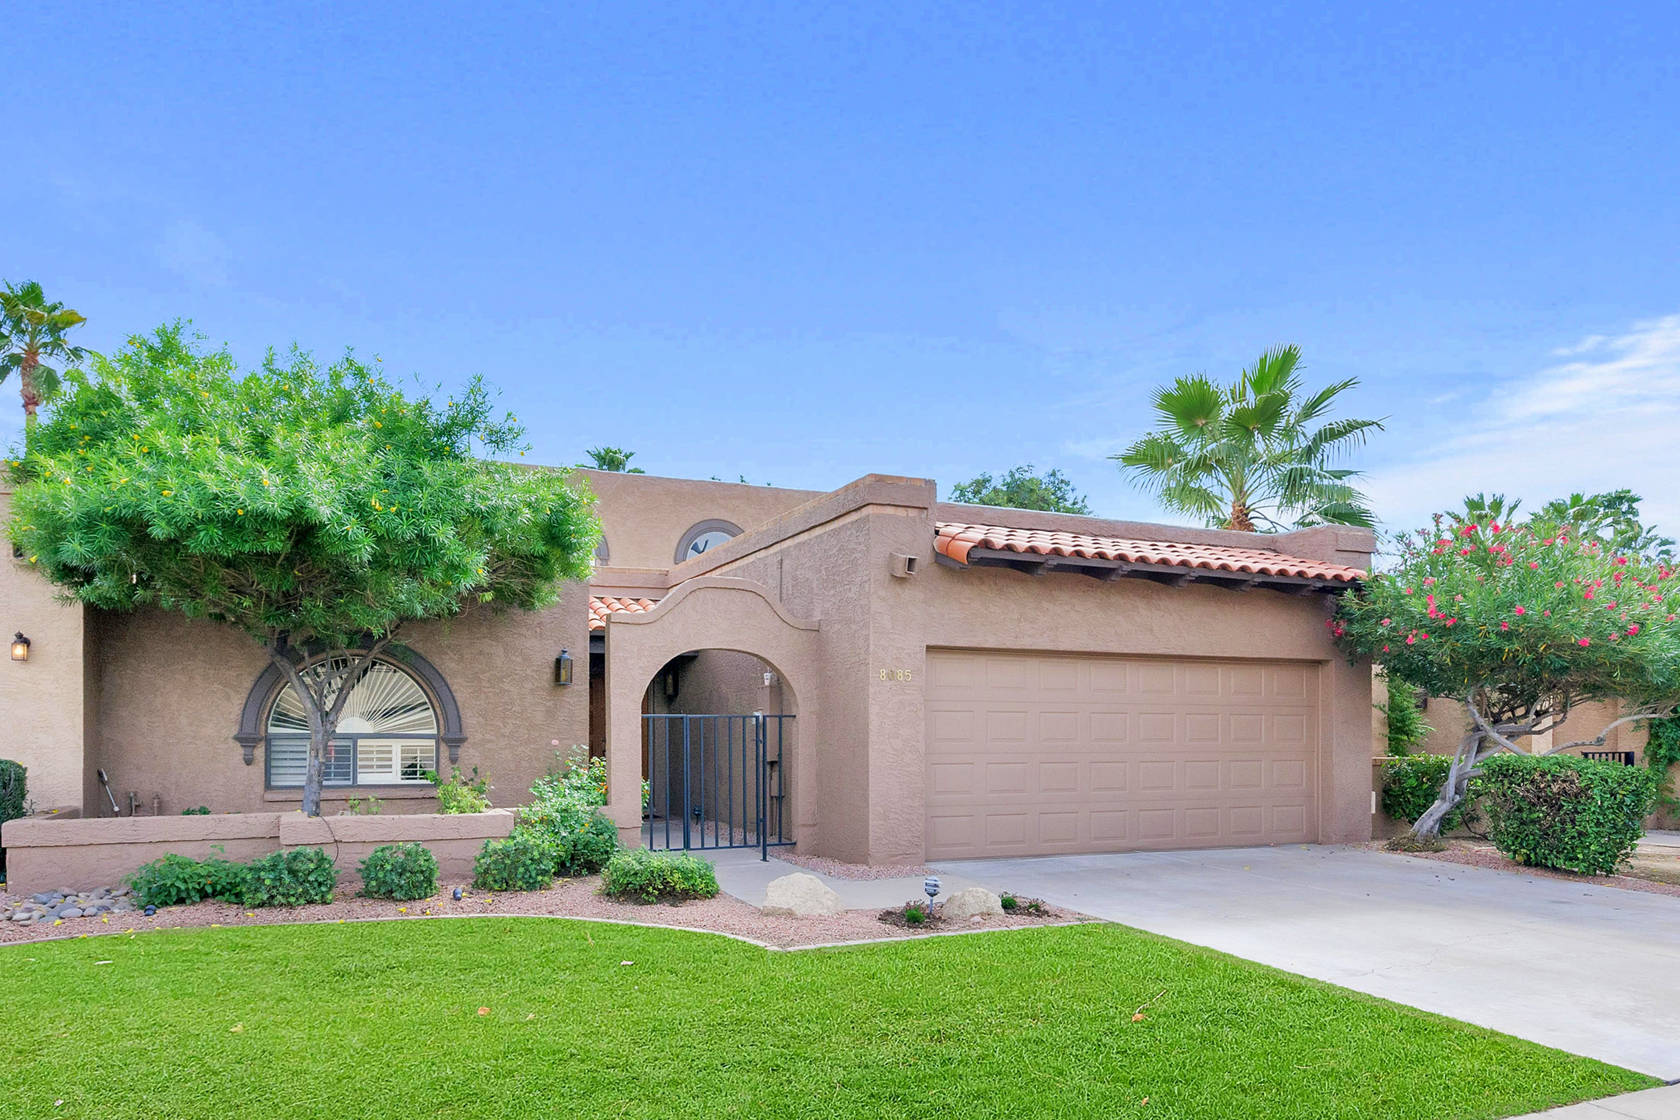 Scottsdale Patio Home For Sale In Mccormick Ranch